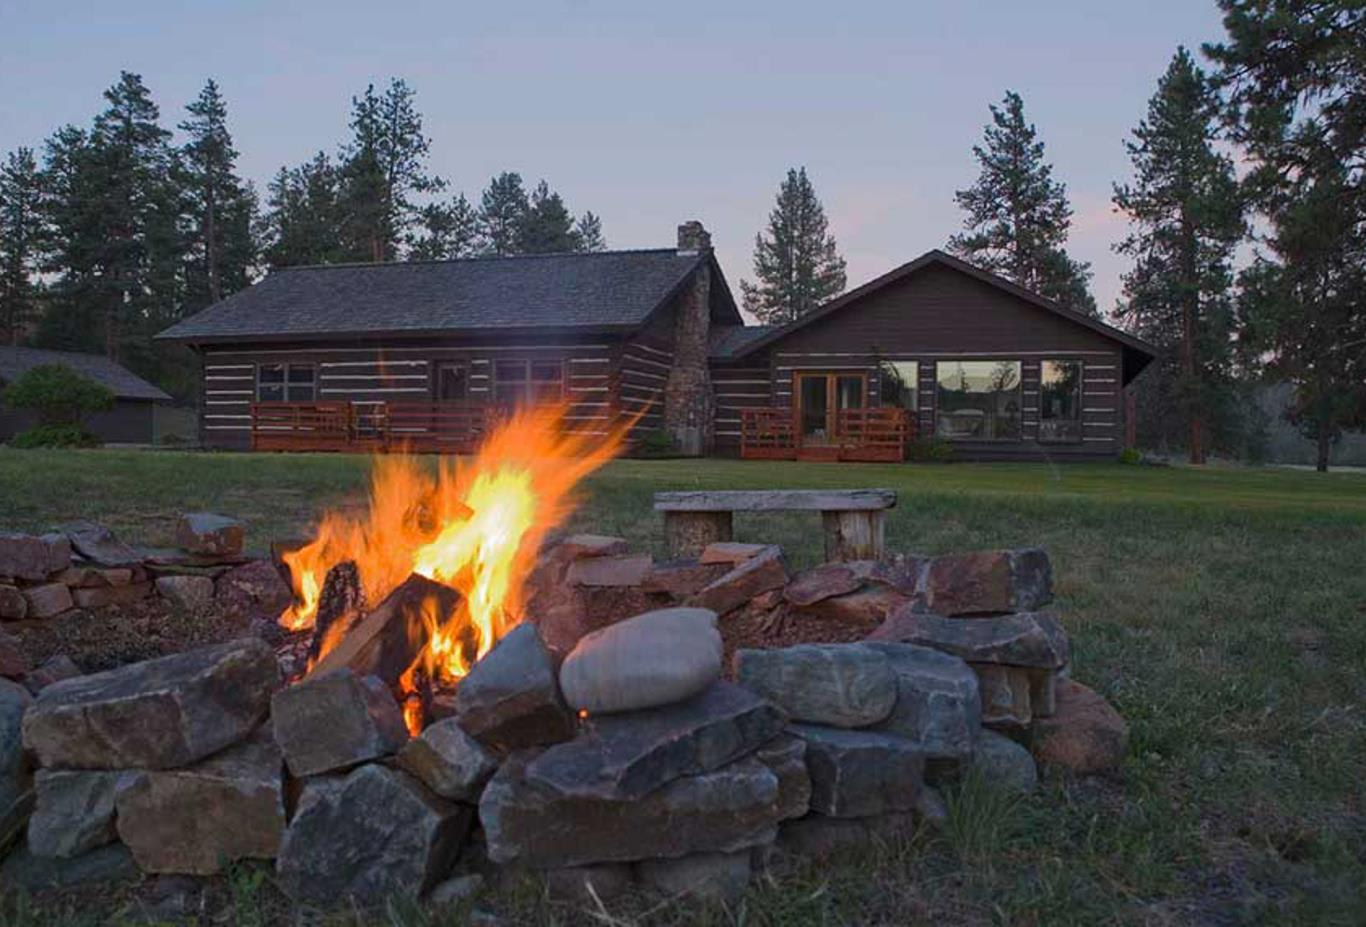 The Blackfoot River Lodge - fire pit in backyard